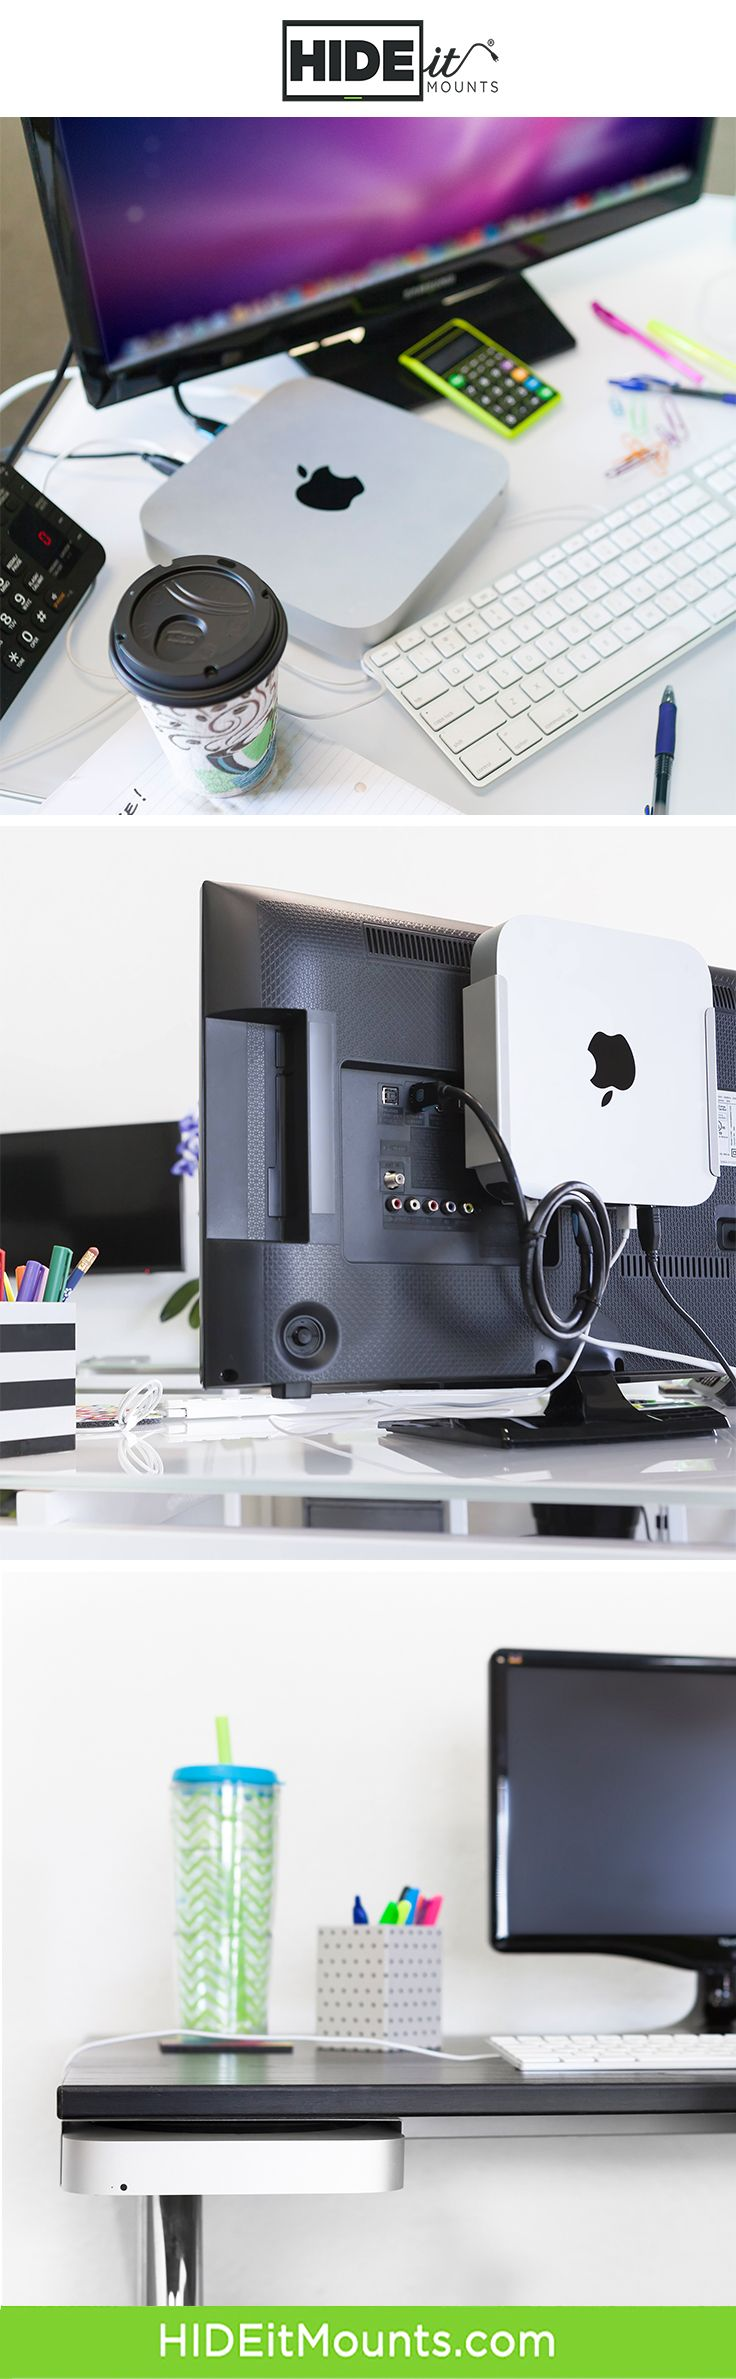 Hideit Miniu Apple Mac Mini Wall Mount Mac Mini Apple Mac Mini New Apple Watch